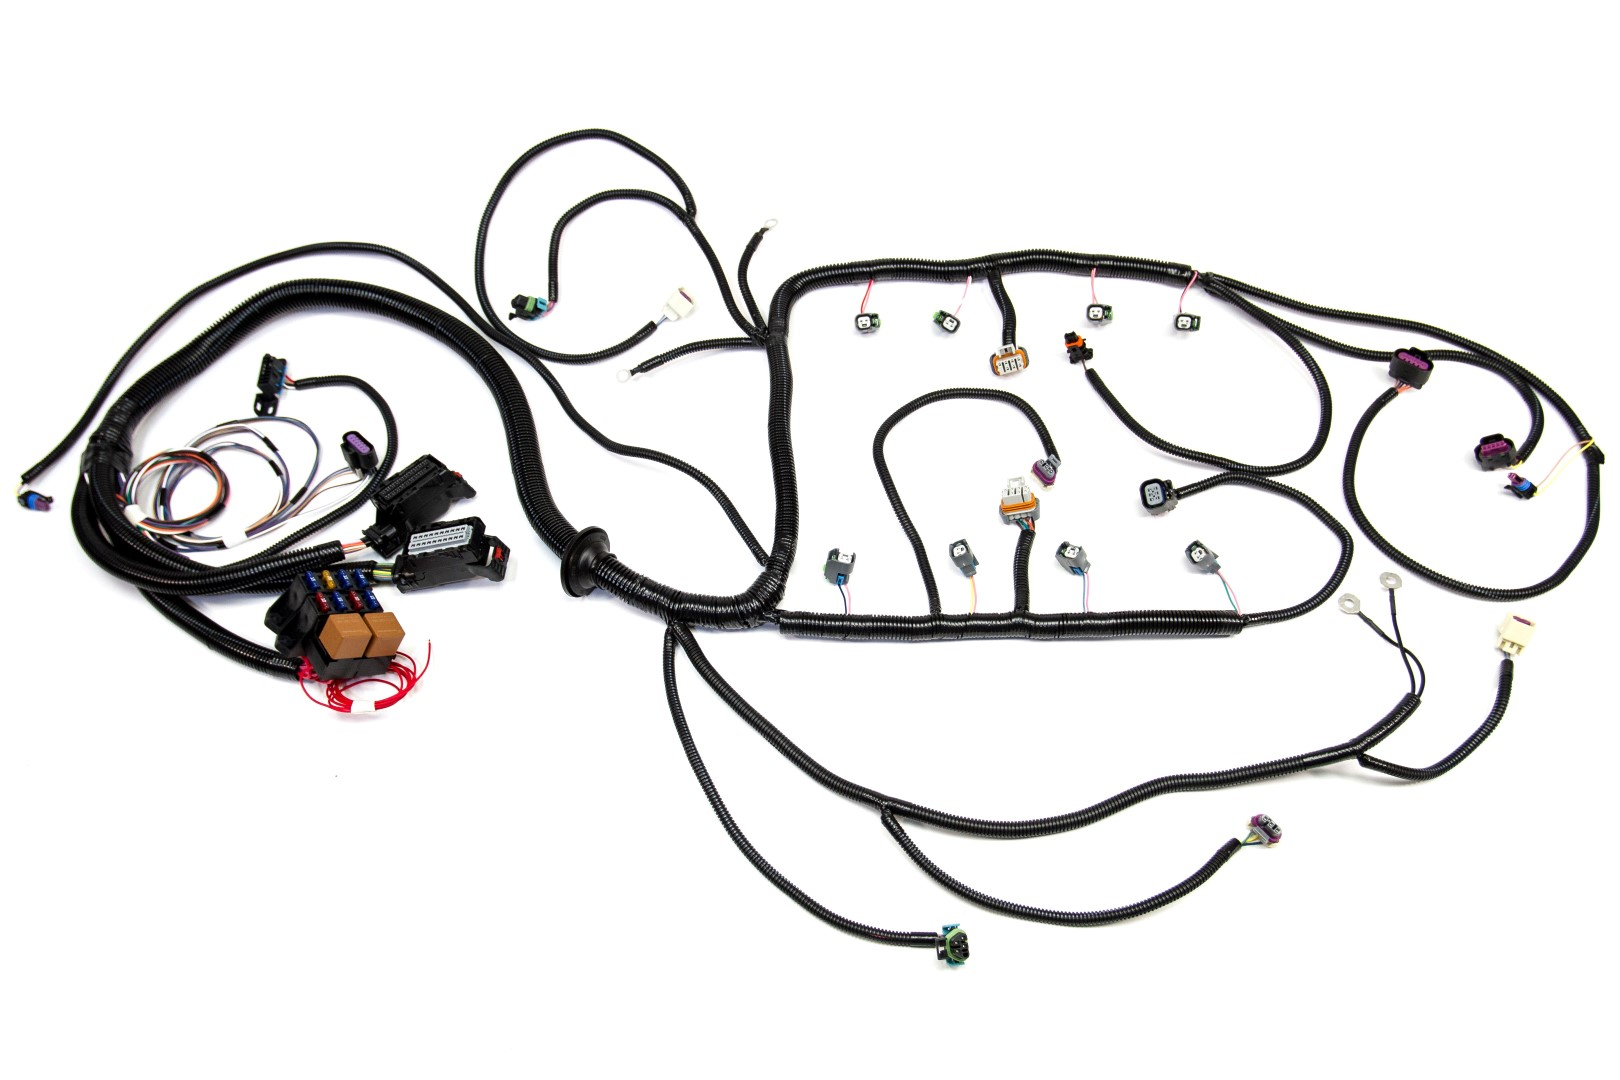 hight resolution of  05 07 ls2 6 0l 58x standalone wiring harness w t56 tr6060